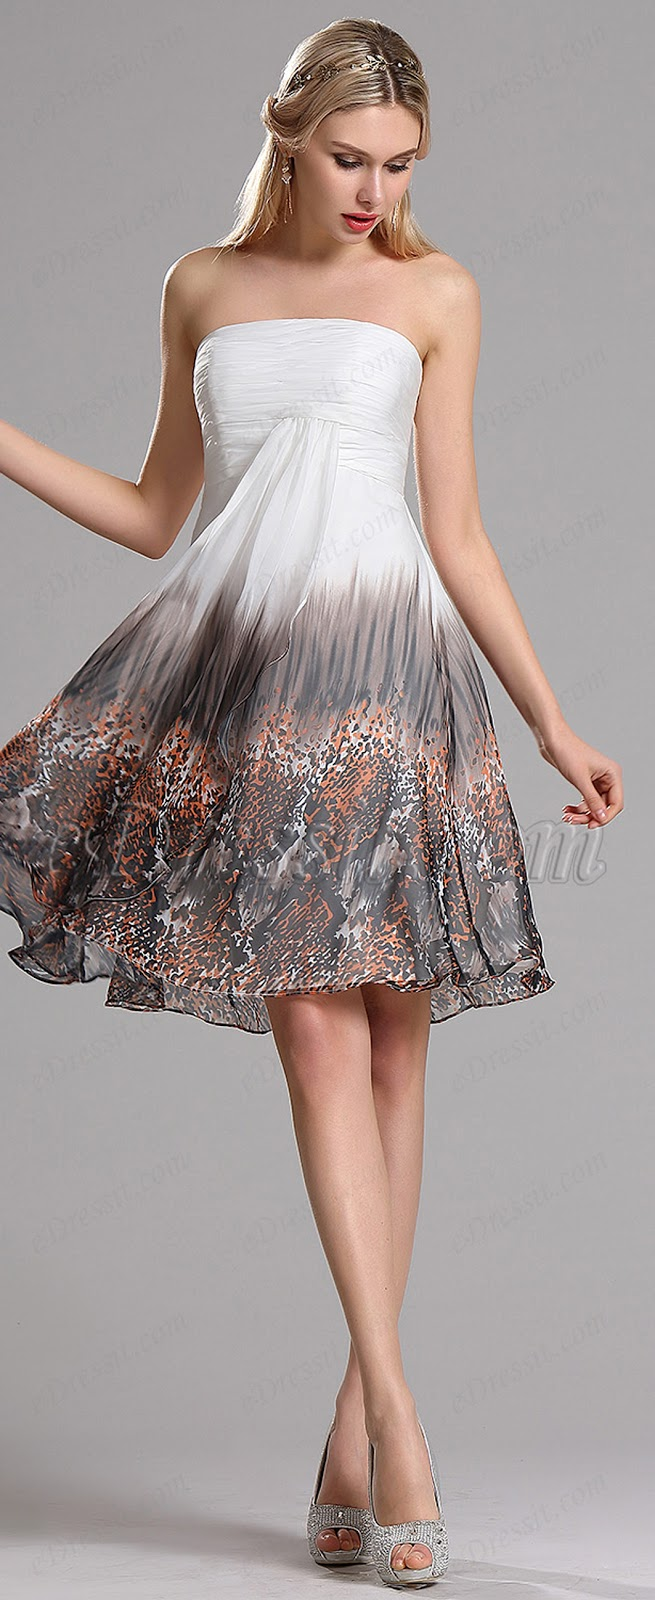 http://www.edressit.com/strapless-printed-cocktail-dress-short-beach-holiday-party-dress-x07151803-_p4665.html